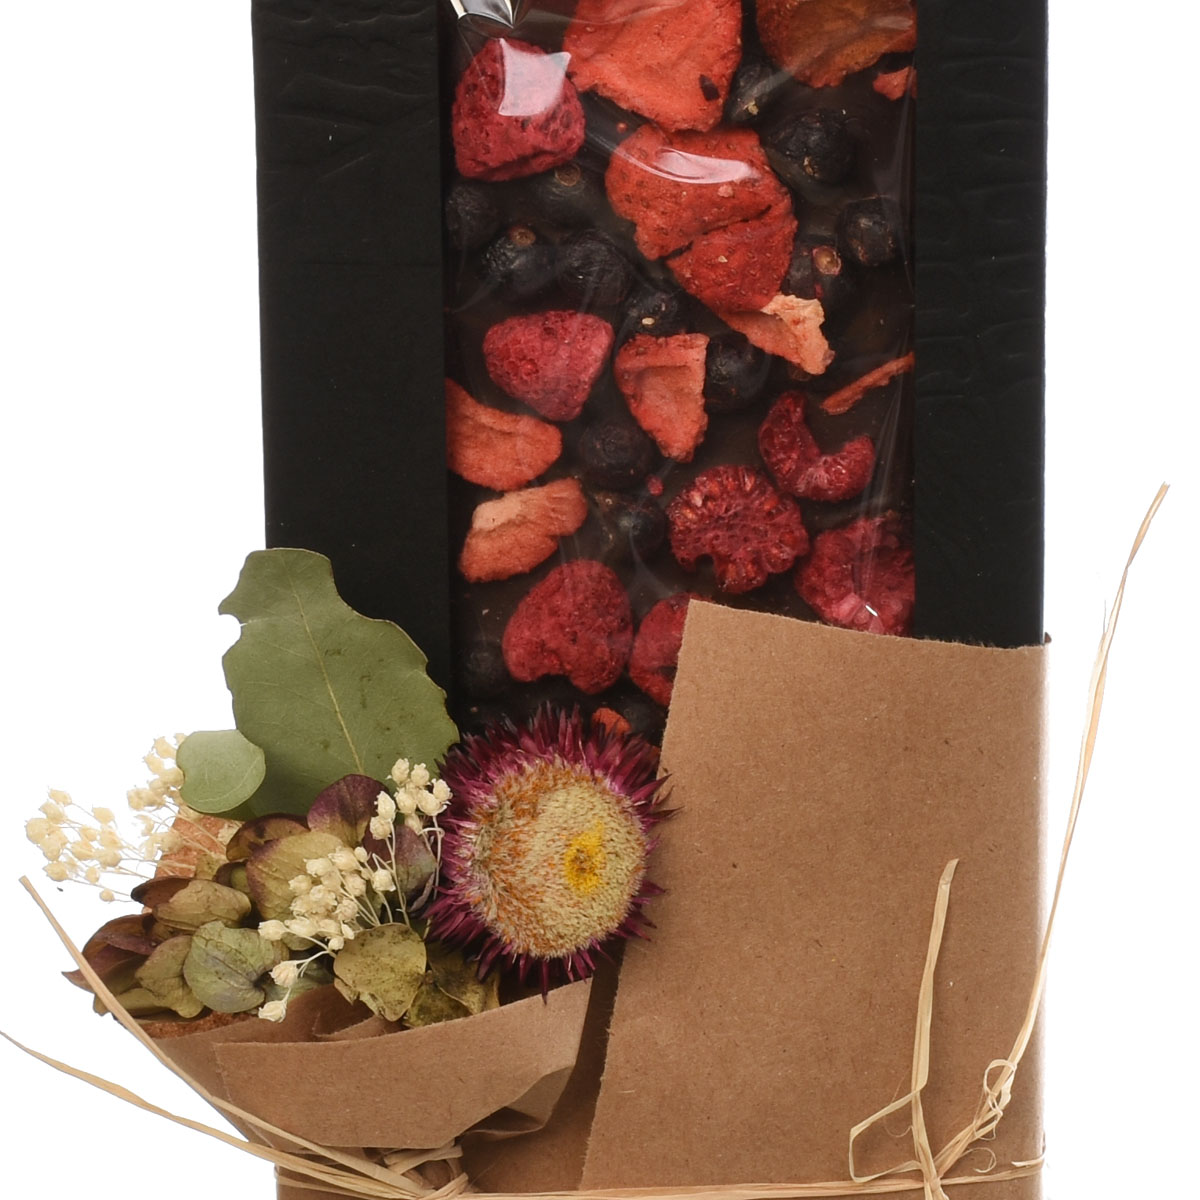 Dark chocolate bar with dried strawberry as add-on for Adele Rae flower designs